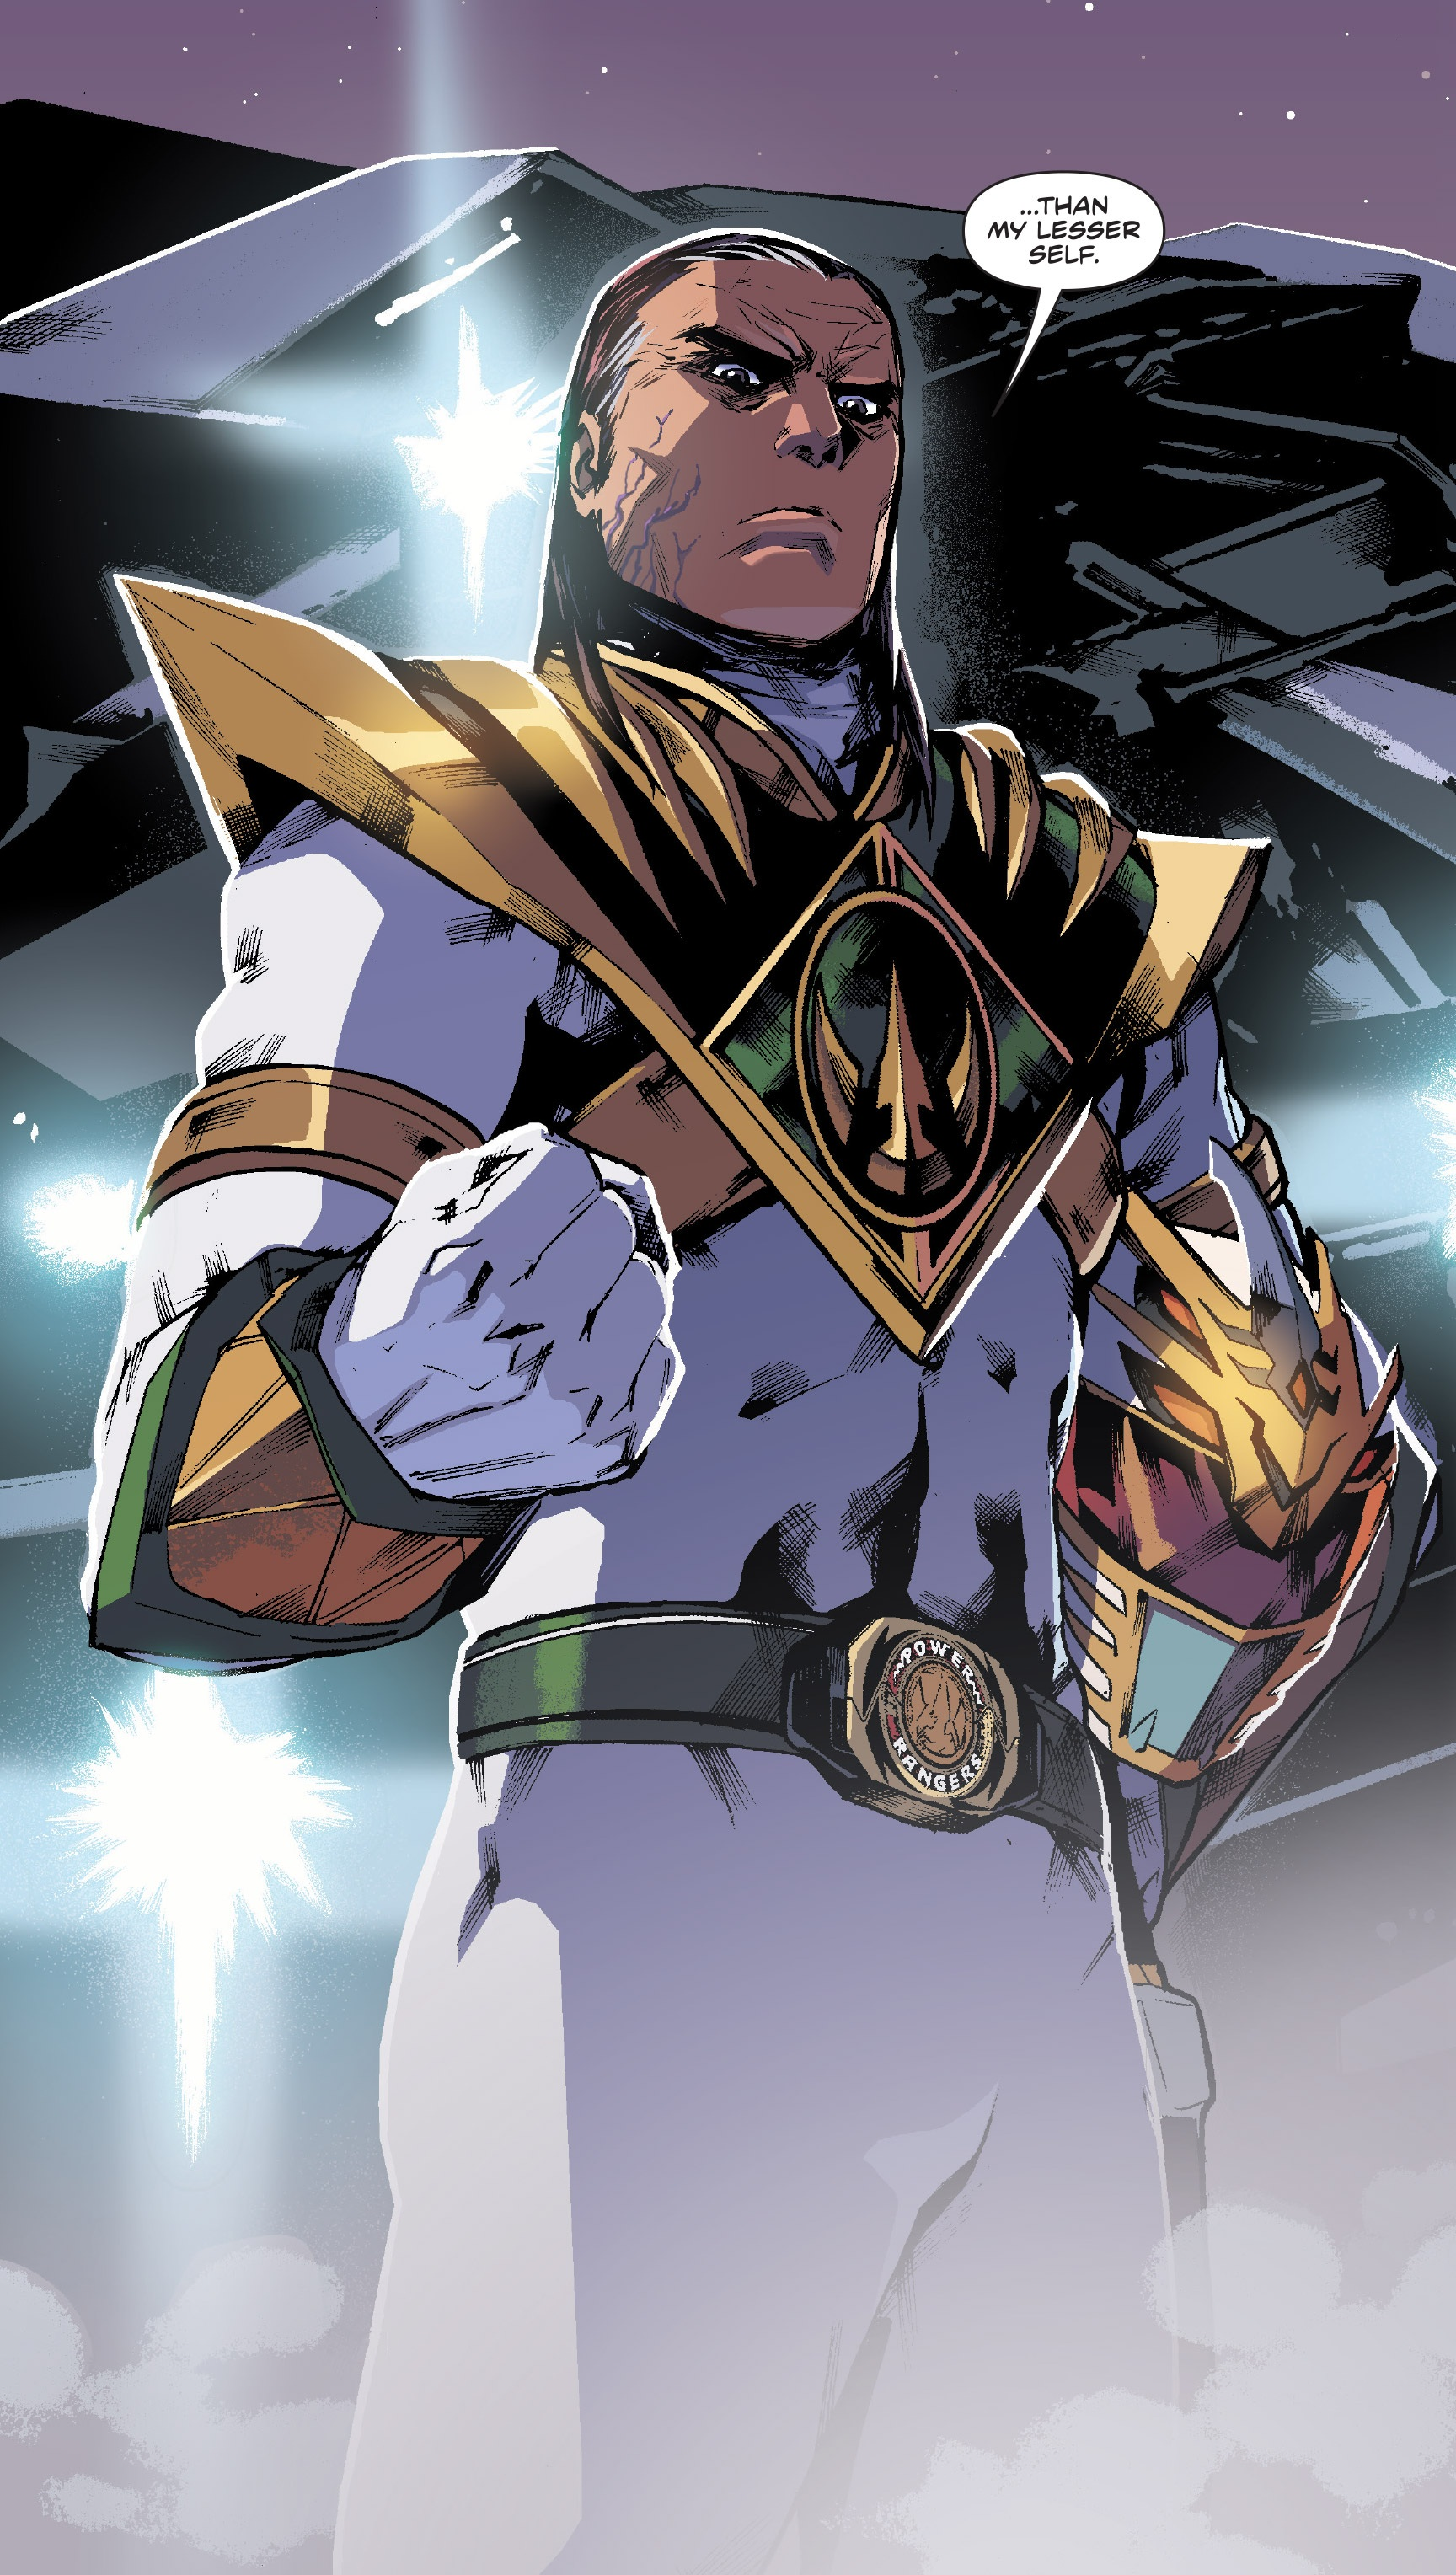 Tommy Oliver/World of the Coinless